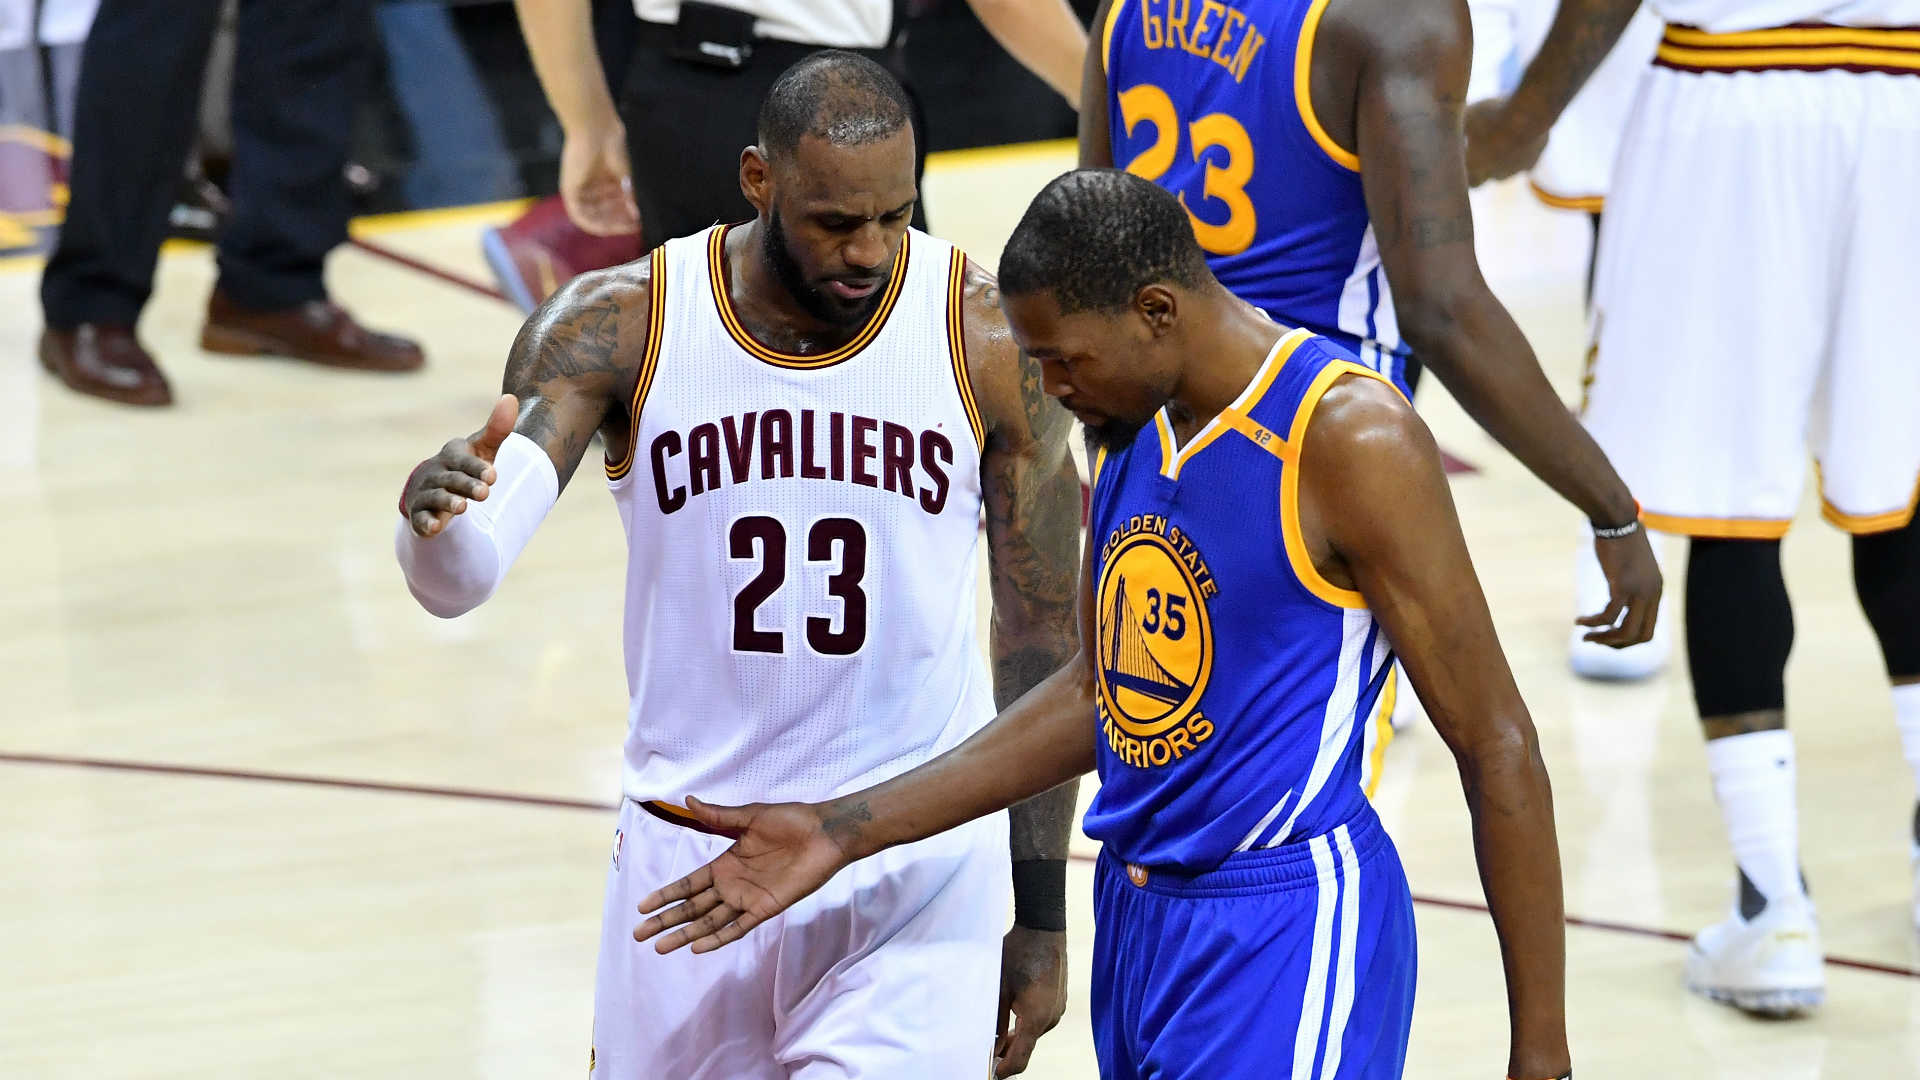 Golden State Warriors Game 5 Recap: LeBron's Herculean Effort Not Enough